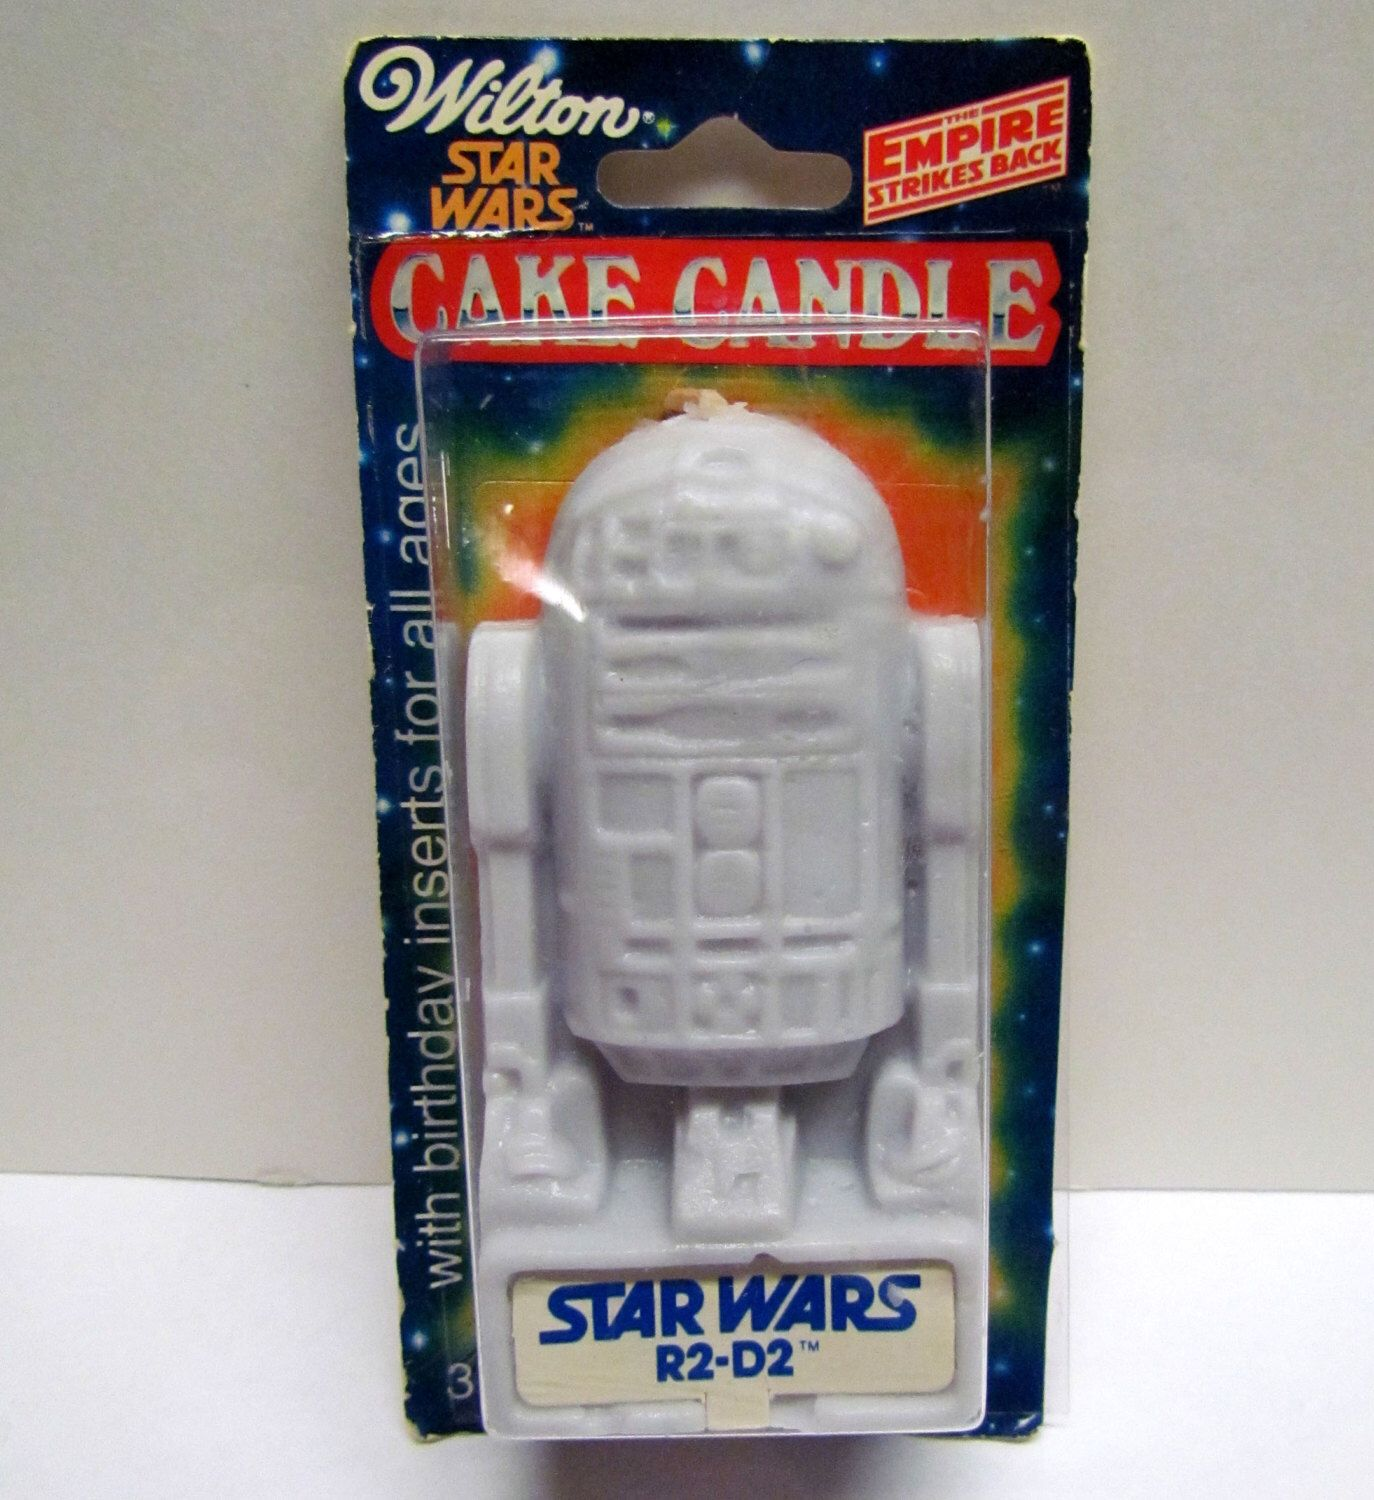 Vintage Star Wars R2D2 Cake Candle still sealed in its